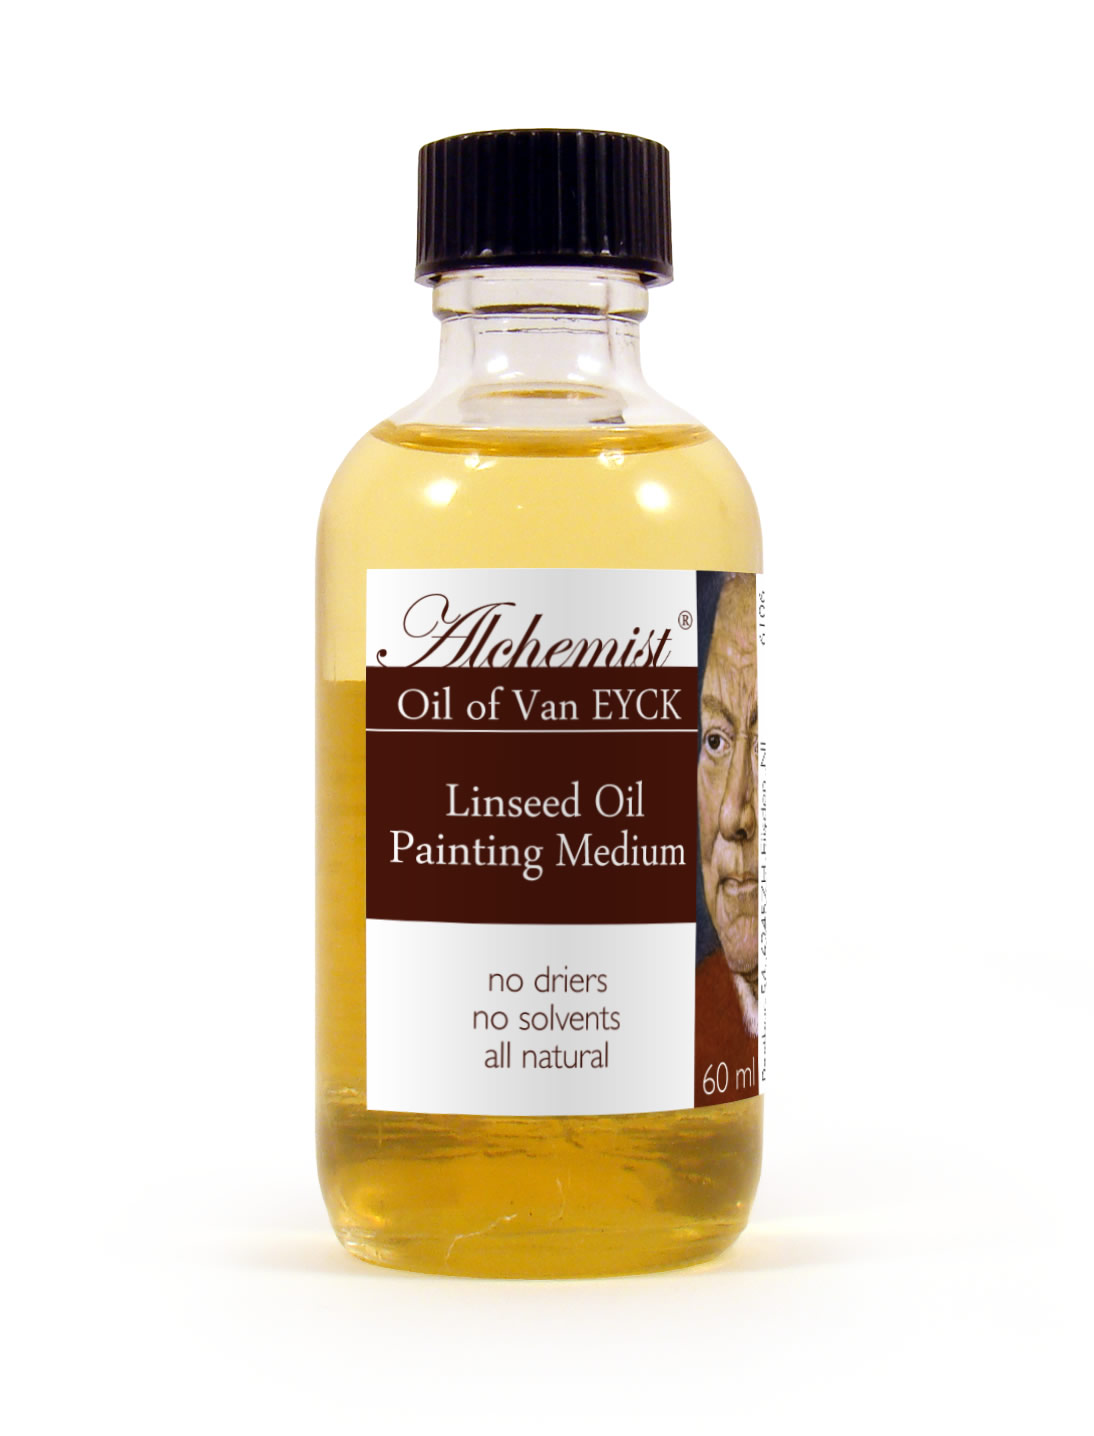 Oil of Van Eyck Linseed Oil Painting Medium